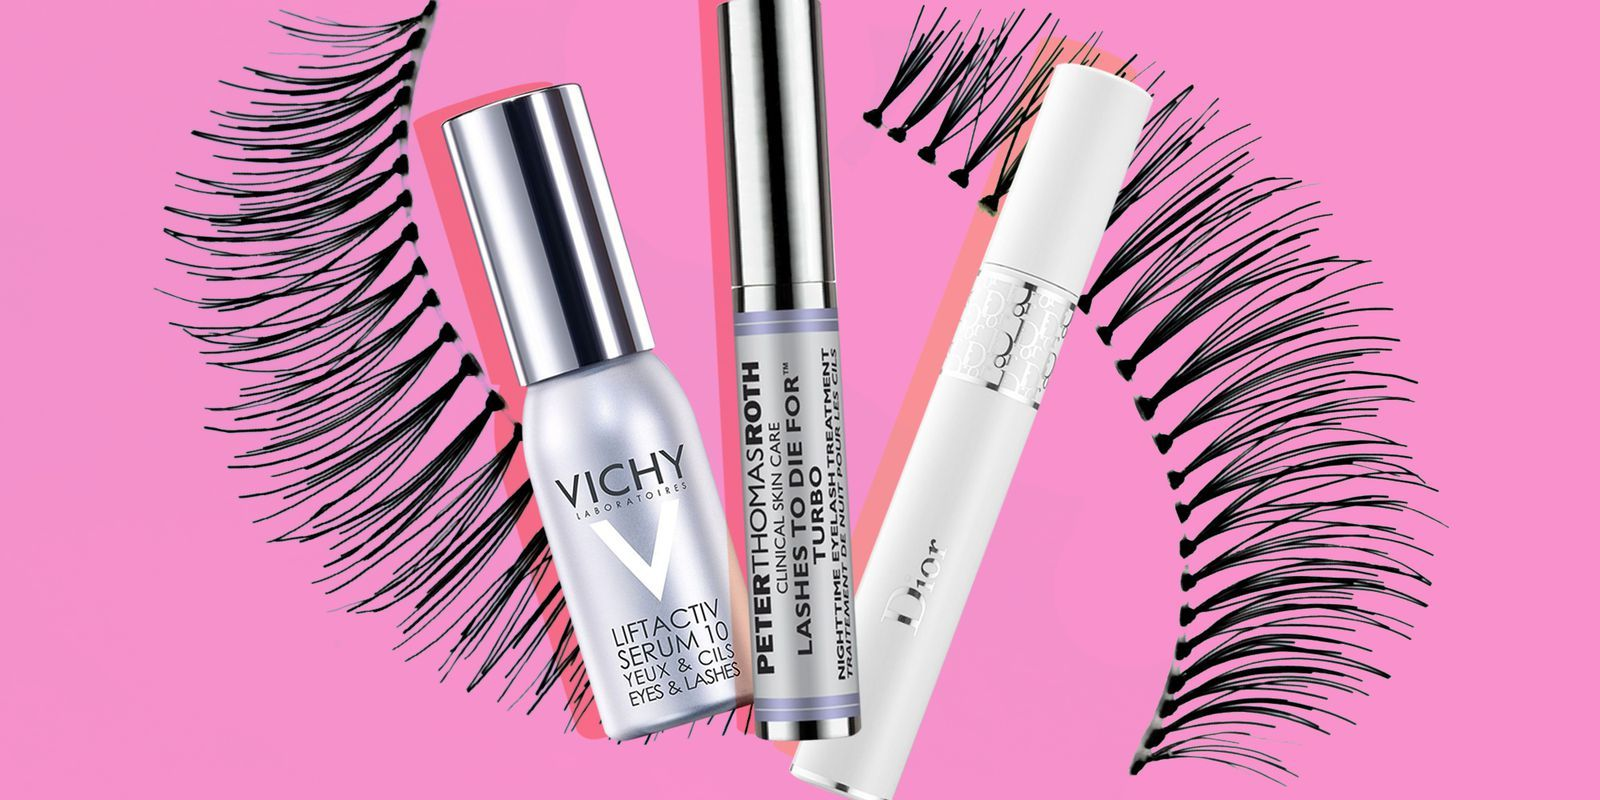 a741c6b09ea The 10 Best Eyelash Serums for Noticeably Longer and Fuller Lashes -  Cosmopolitan.com